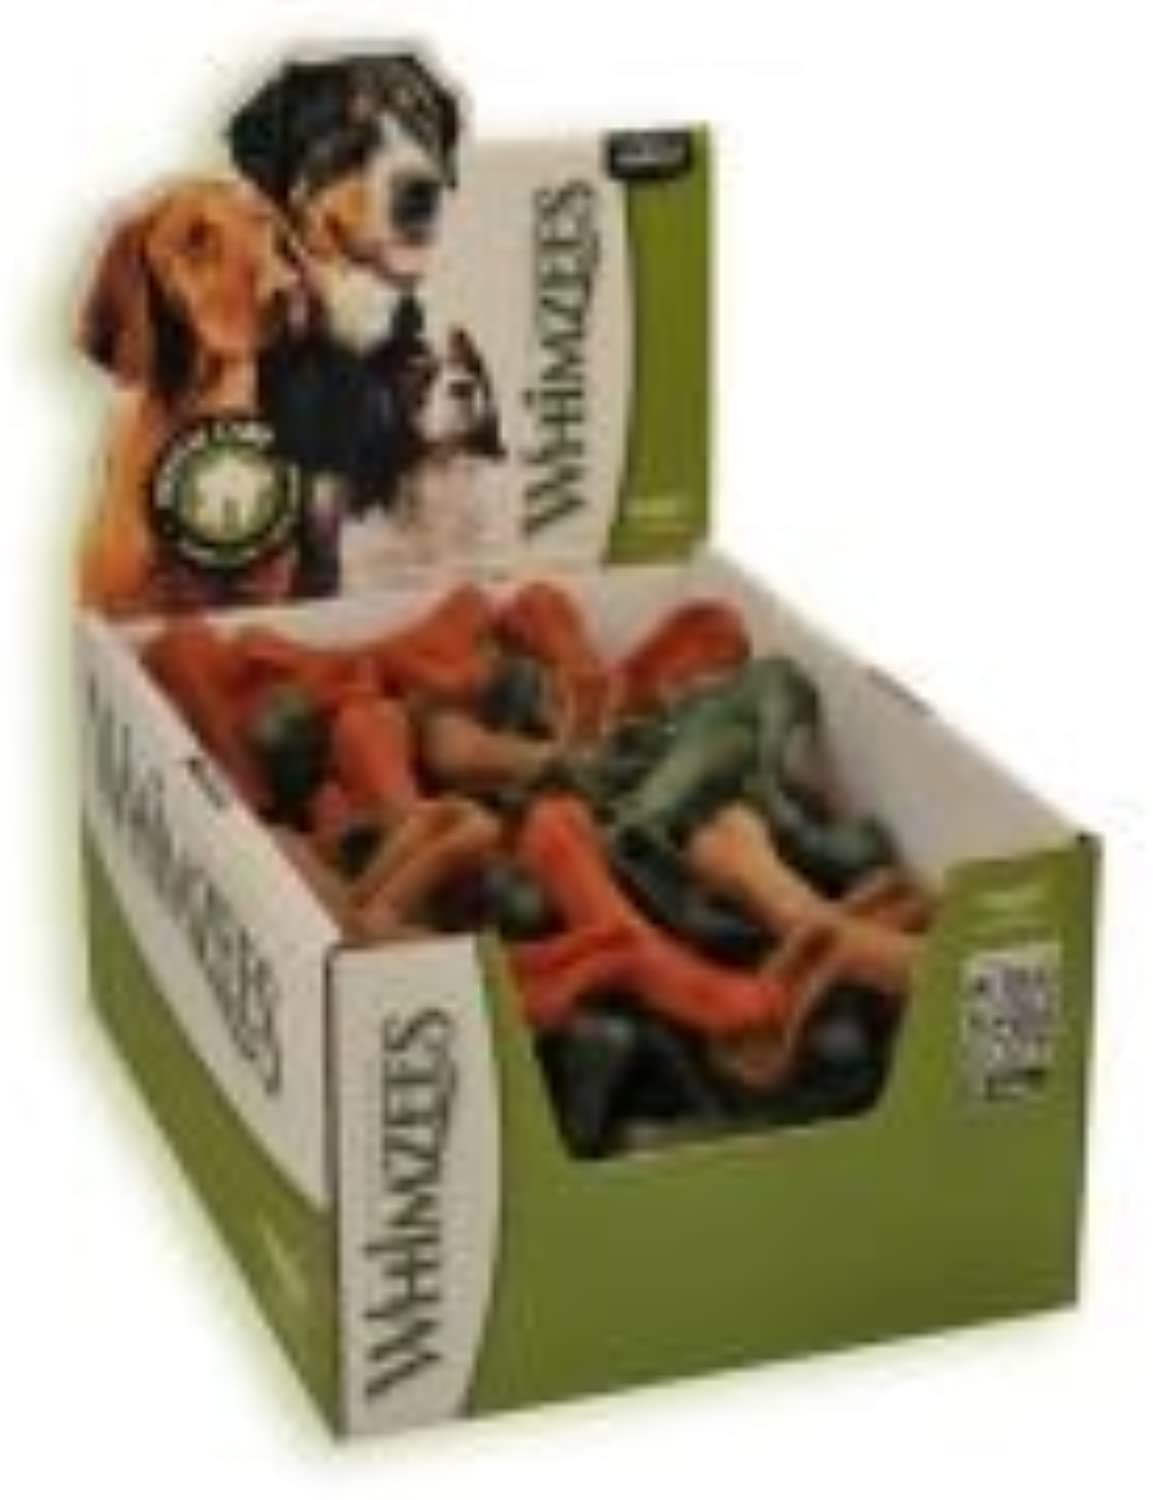 KENNELPAK Whimzees Cross Bone sgl pack of 50